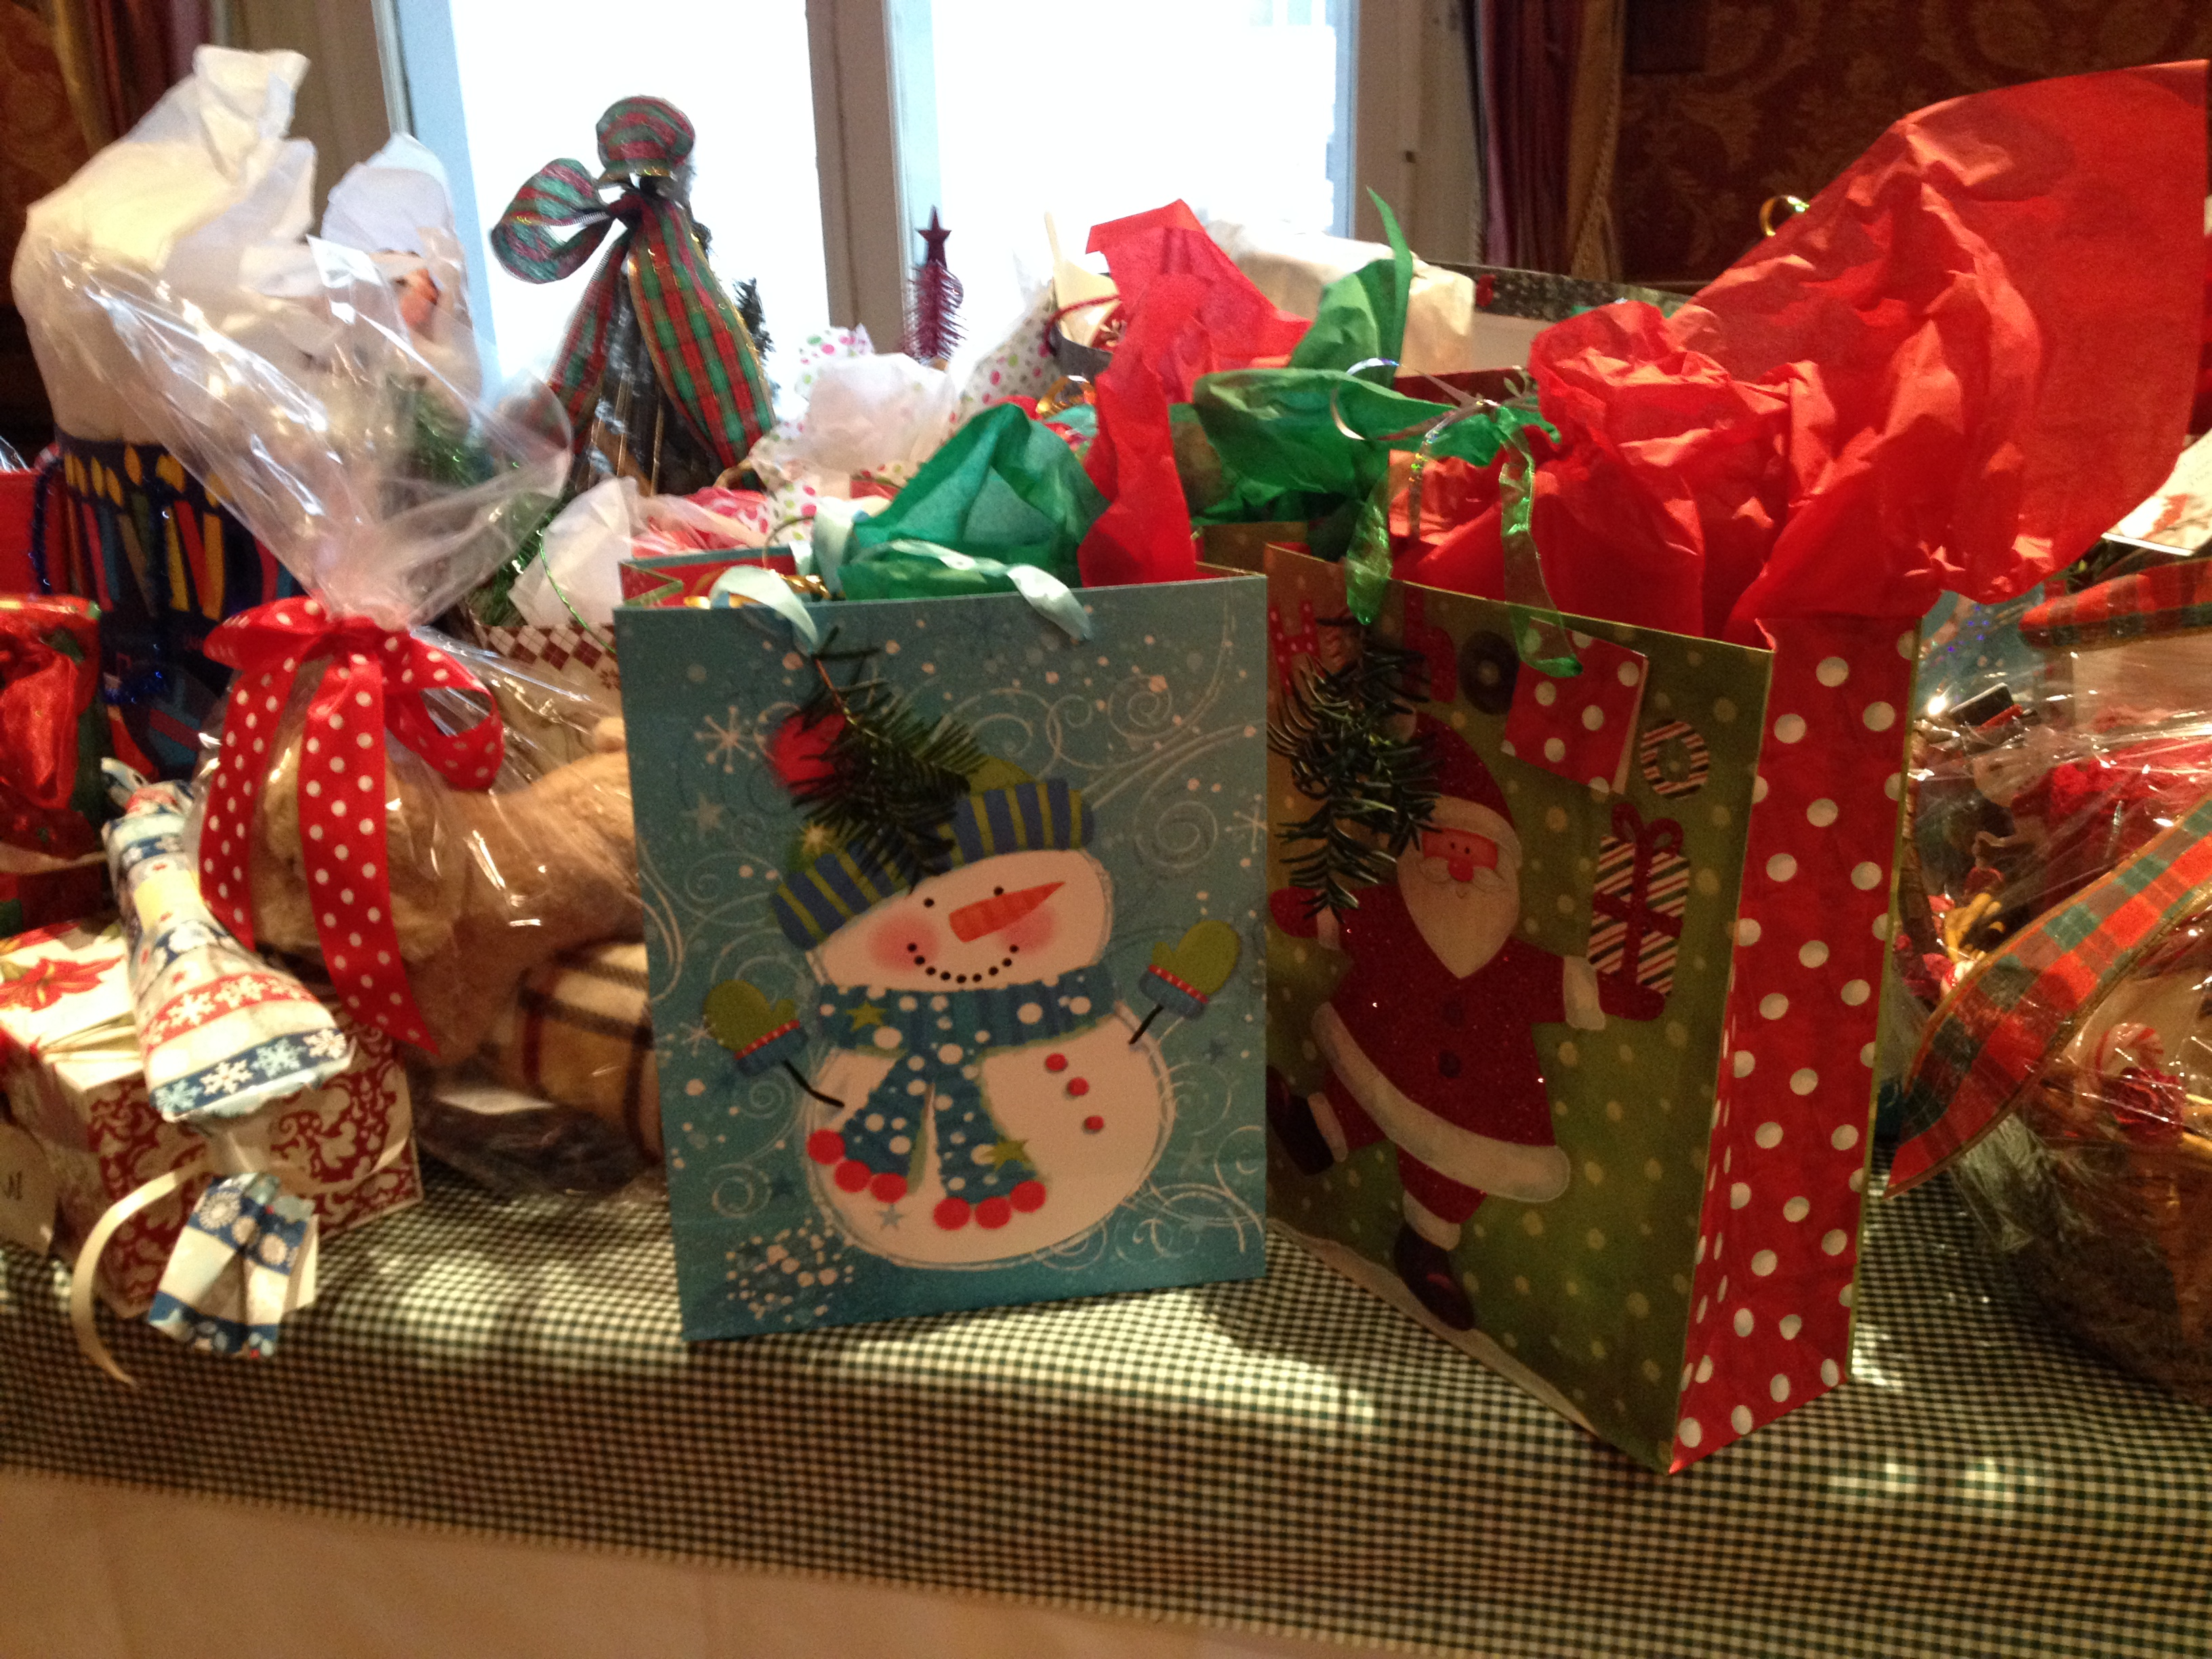 Ways to decorate gift bags -  A Box Inside And Out With Holiday Paper Is Easy Requiring Just A Scissors And Scotch Tape Plus The Paper And Placing Wrapped Or Unwrapped Gifts Inside